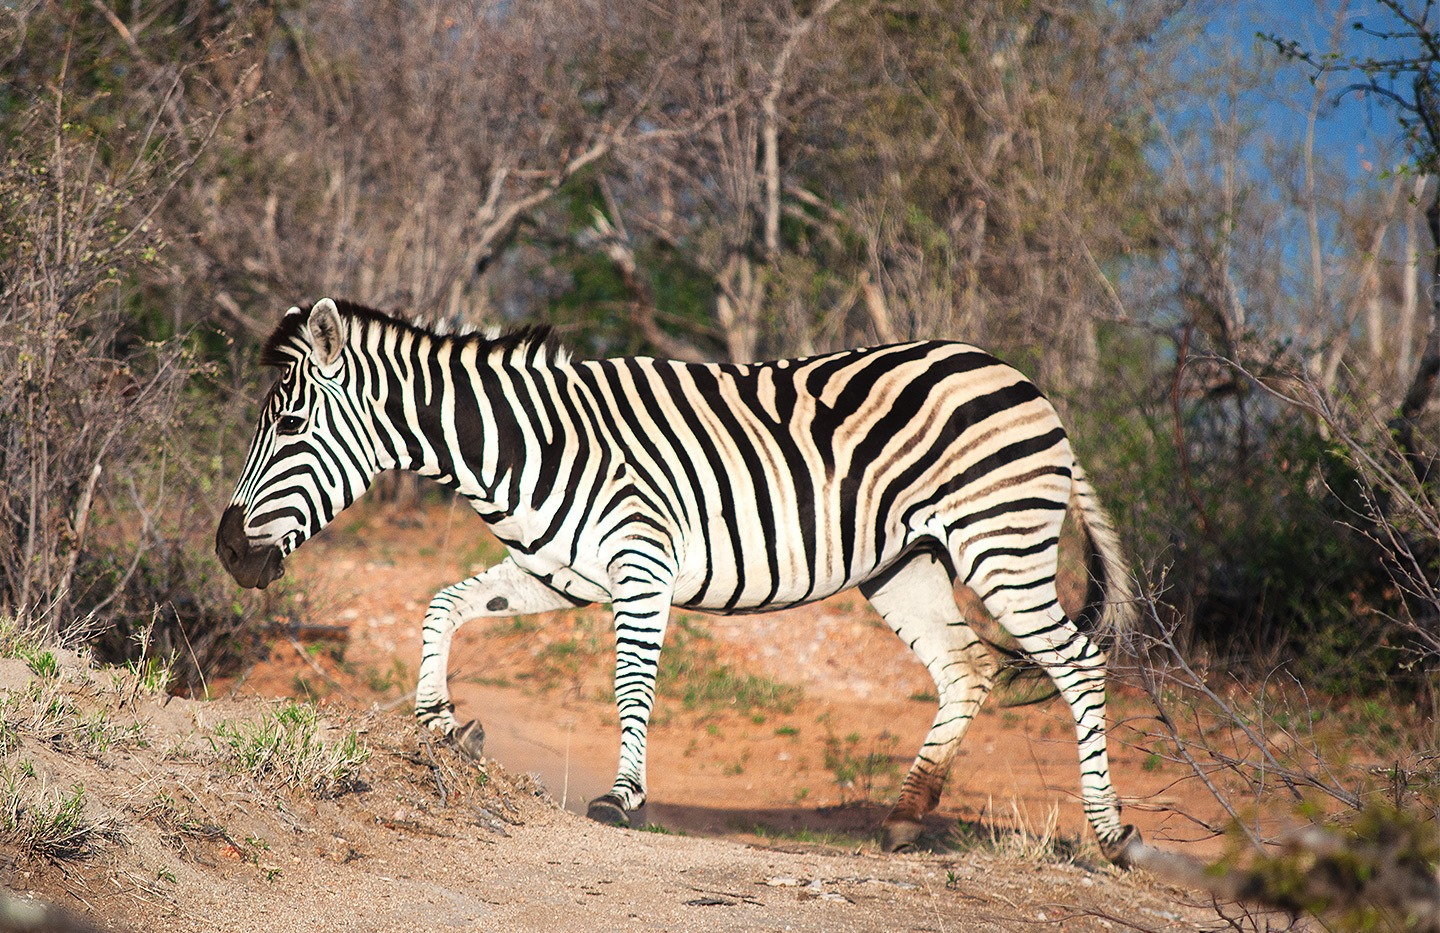 Zebra in South Africa